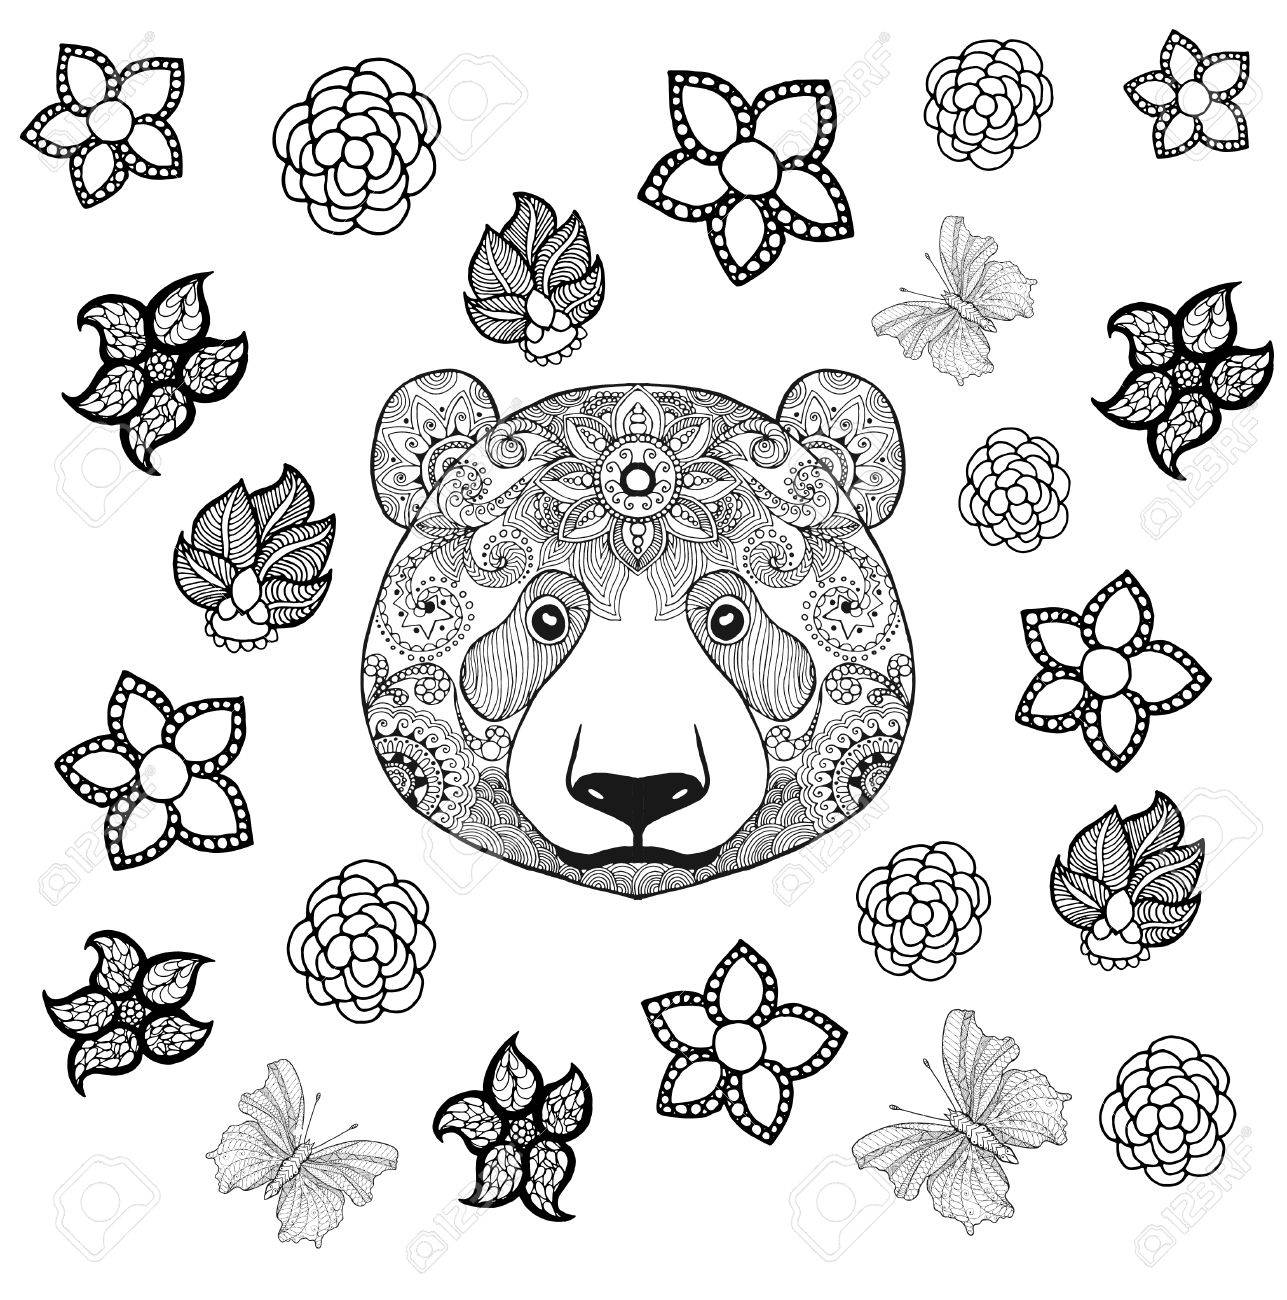 Flower Panda Coloring Page Royalty Free Cliparts Vectors And Stock